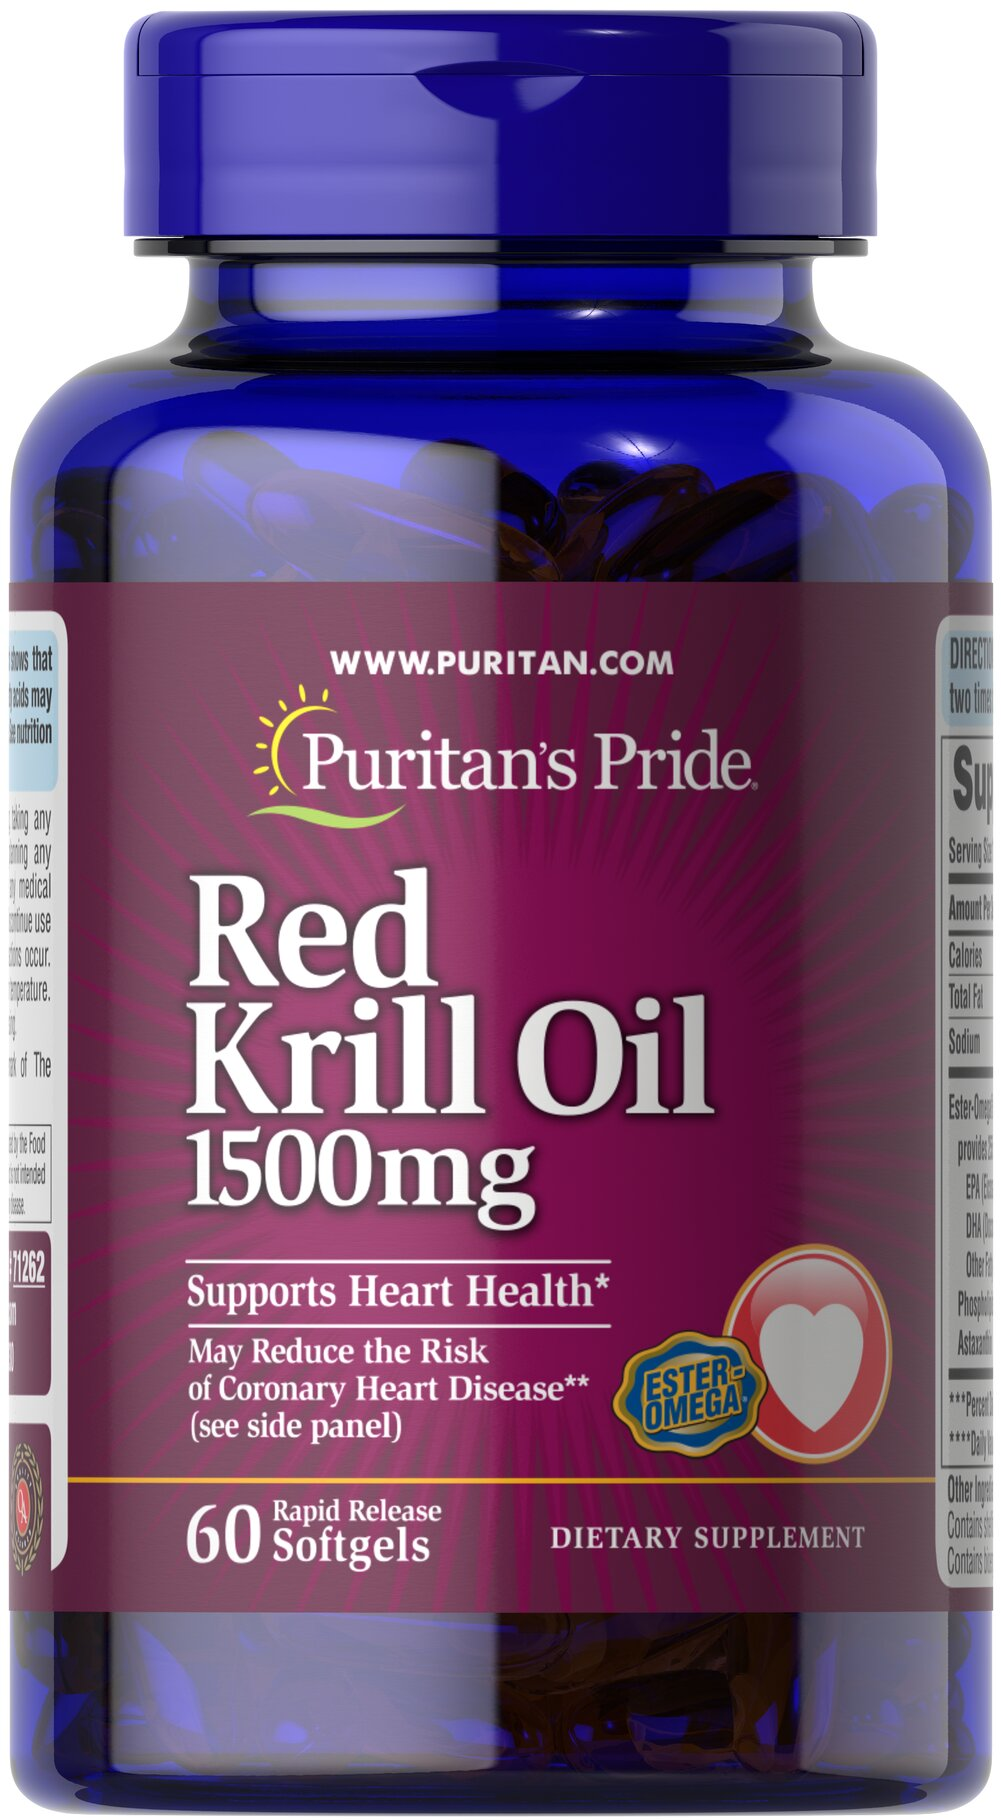 "Maximum Strength Red Krill Oil 1500 mg (255 mg Active Omega-3) <p><strong>With Naturally Occurring Astaxanthin</strong></p><p>Supports a healthy heart.**</p><p>Provides you with Omega-3 fatty acids — the ""good"" fats important for cellular and metabolic health.**</p><p></p><p>Rapid Release softgels facilitate quick absorption.**</p><p></p> 60 Softgels 1500 mg $55.99"